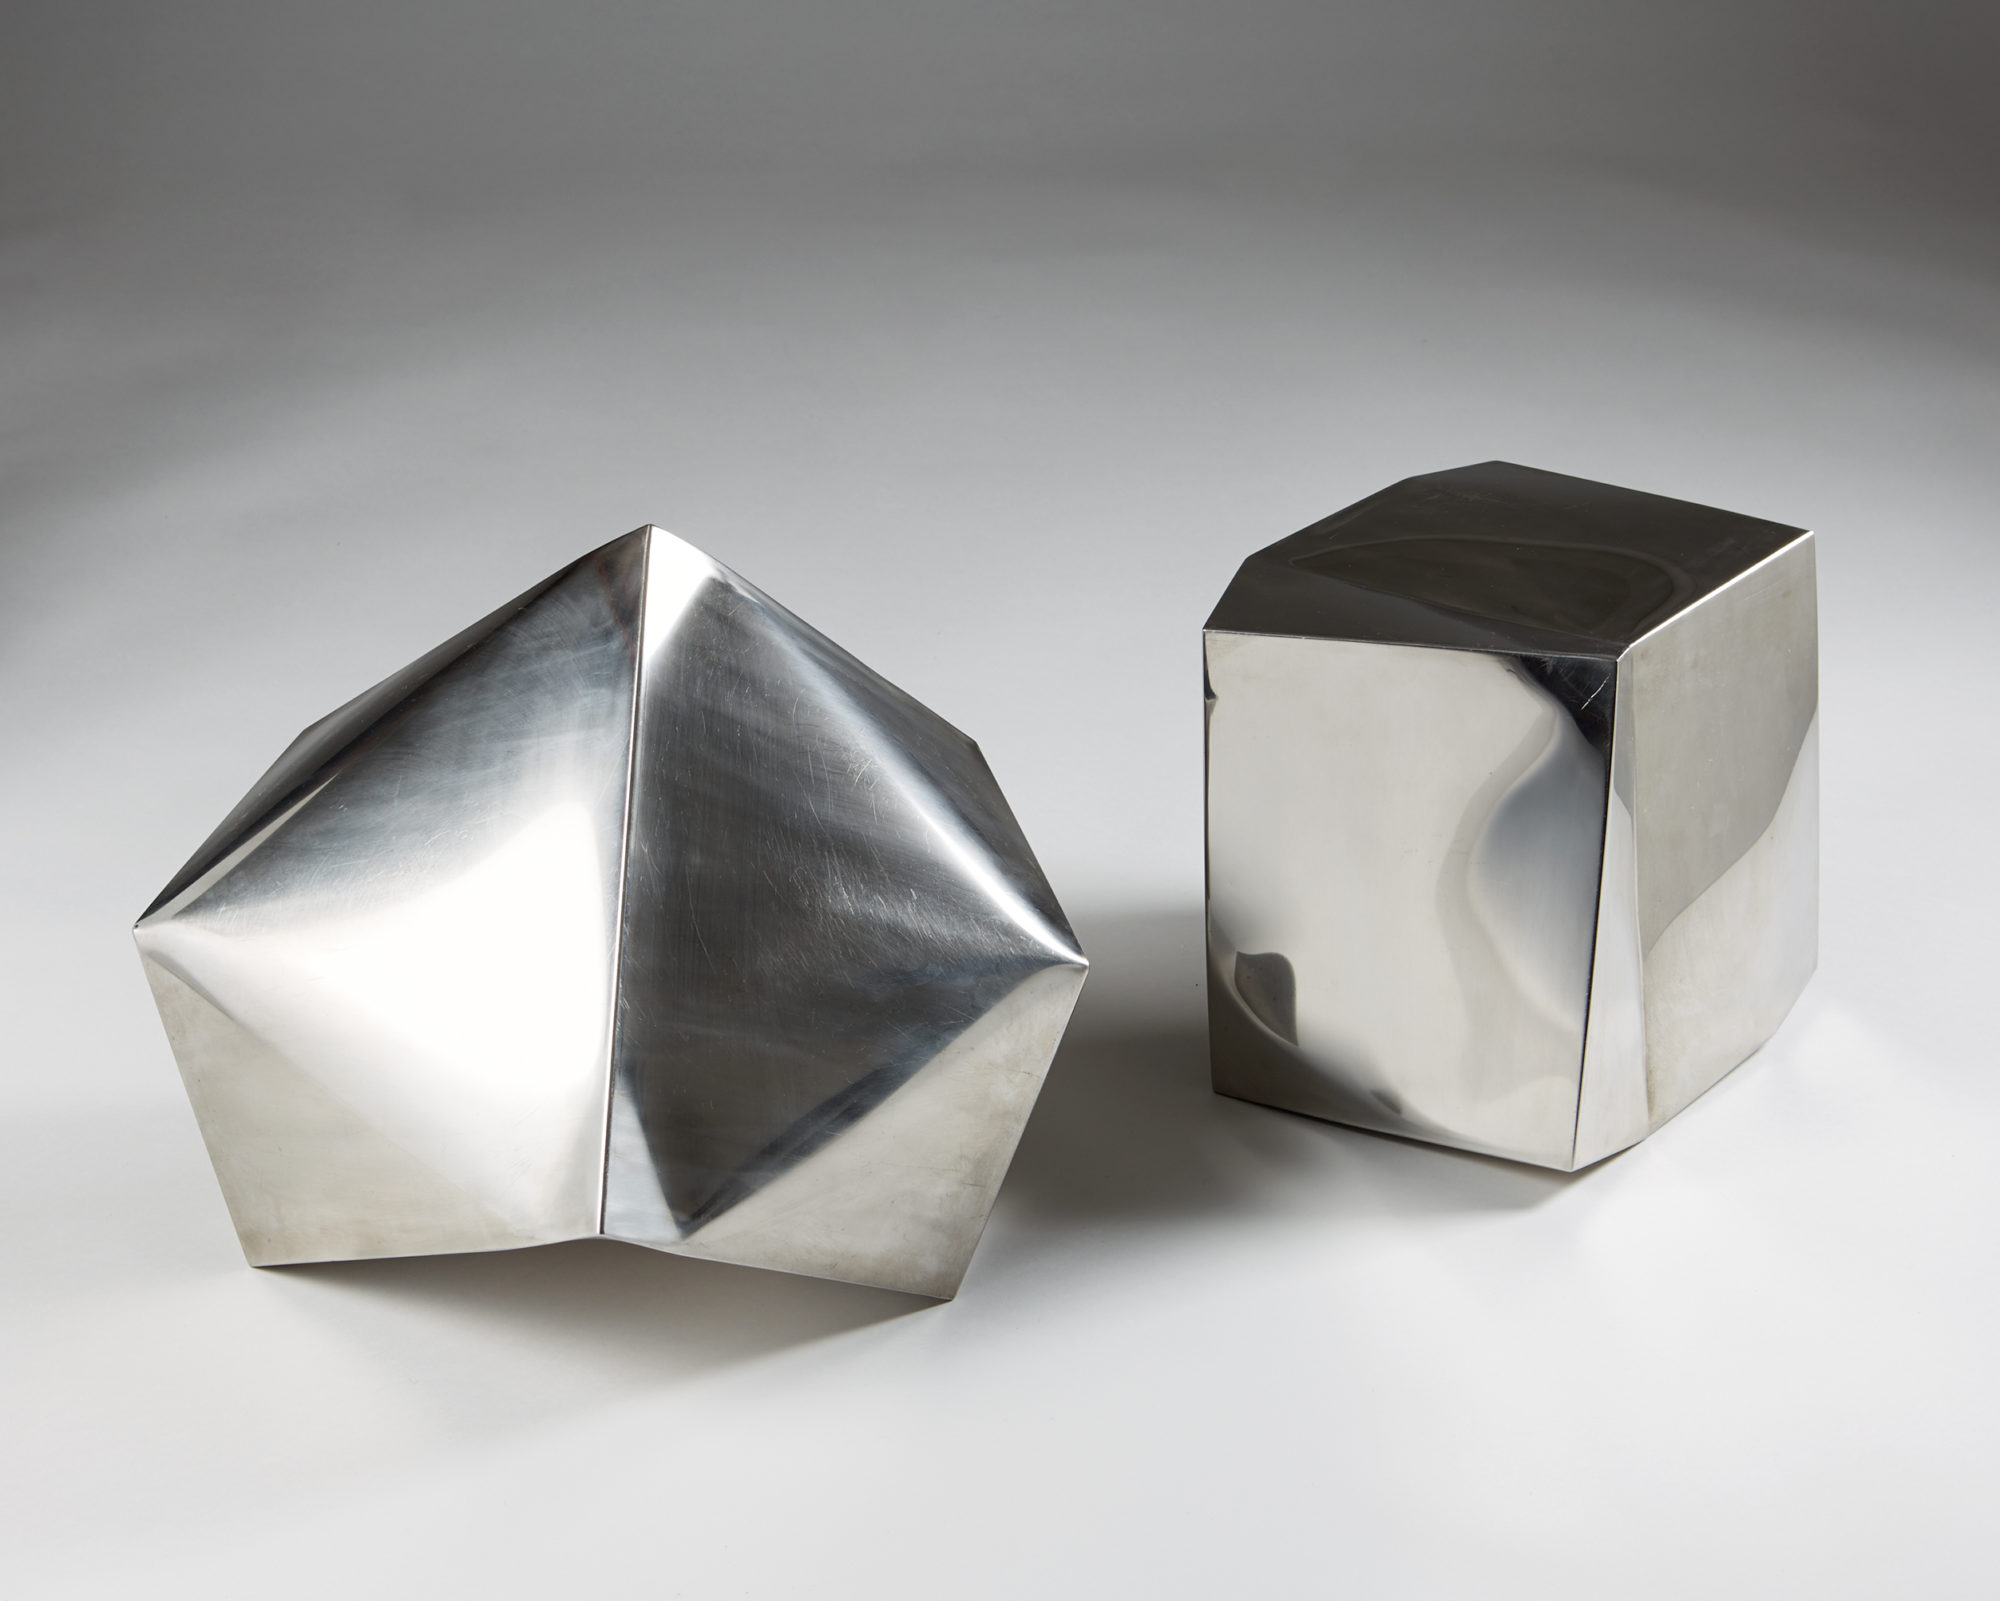 Pair of Sculptures Untitled by Ib Agger, Denmark. 2006. by Modernity on curated-crowd.com